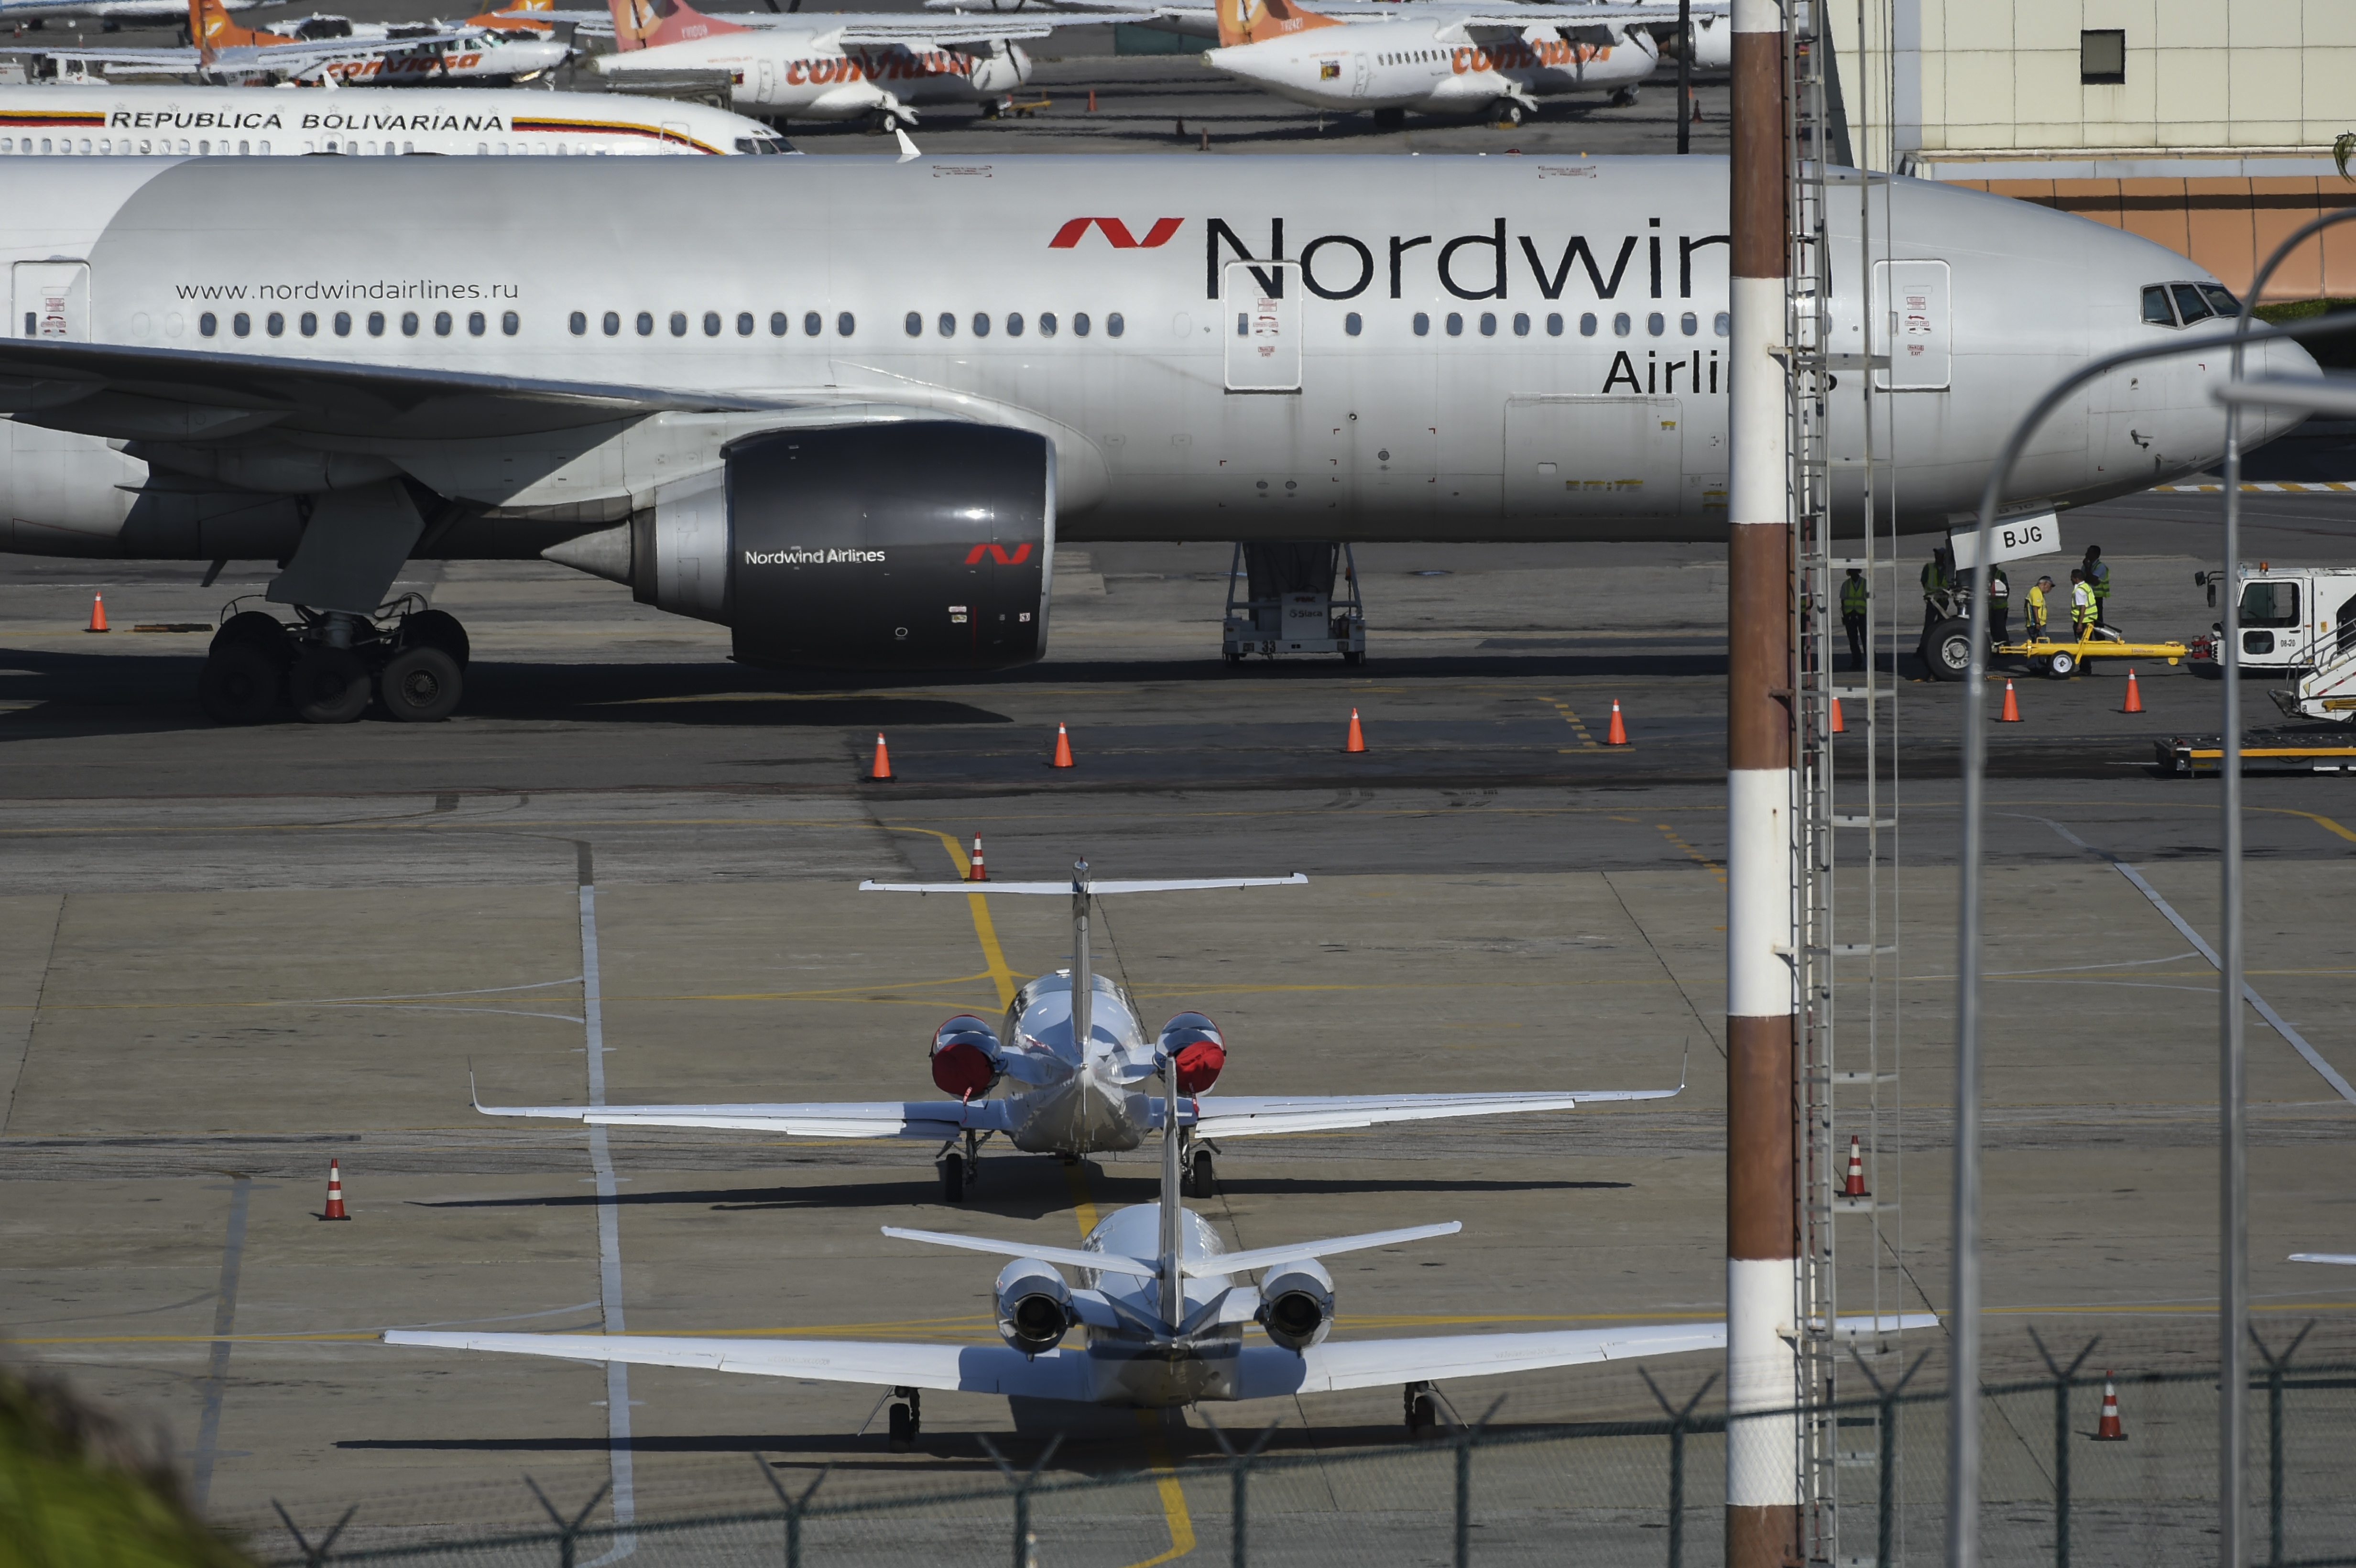 A Boeing 777 from Russia's Nordwind Airlines remains parked on the runway at La Guaira airport, near Caracas on Jan. 30, 2019.